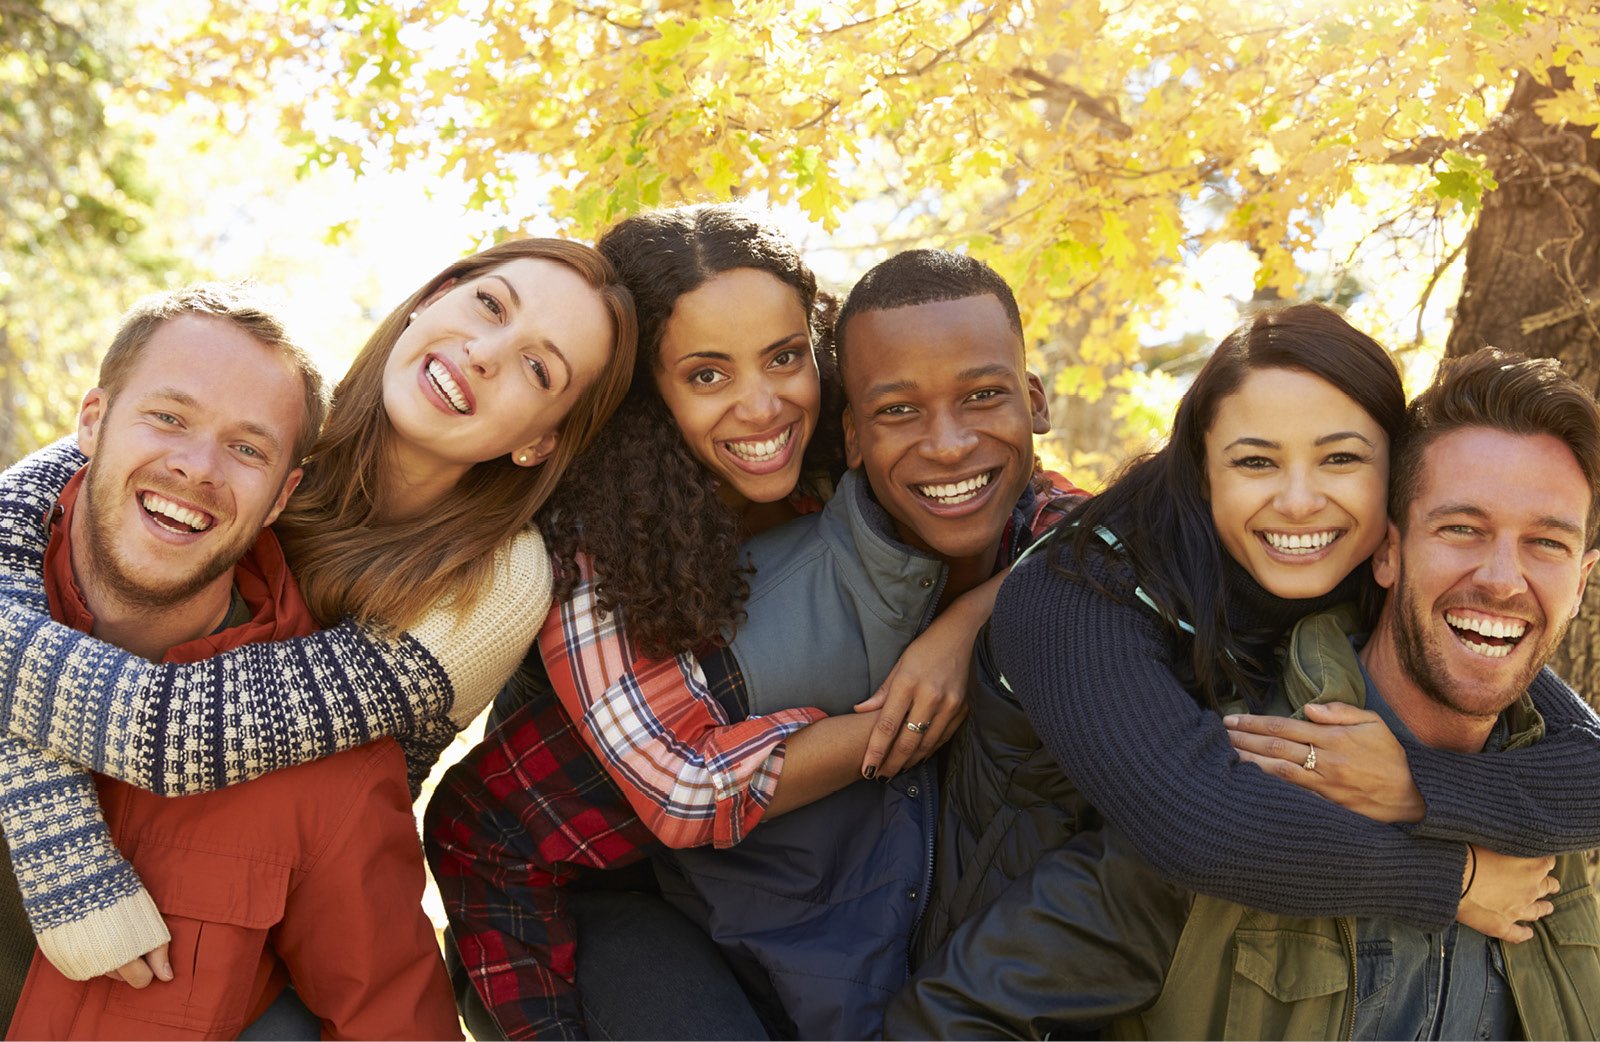 Image of a group of people both male and female together smiling with a fall themed background.